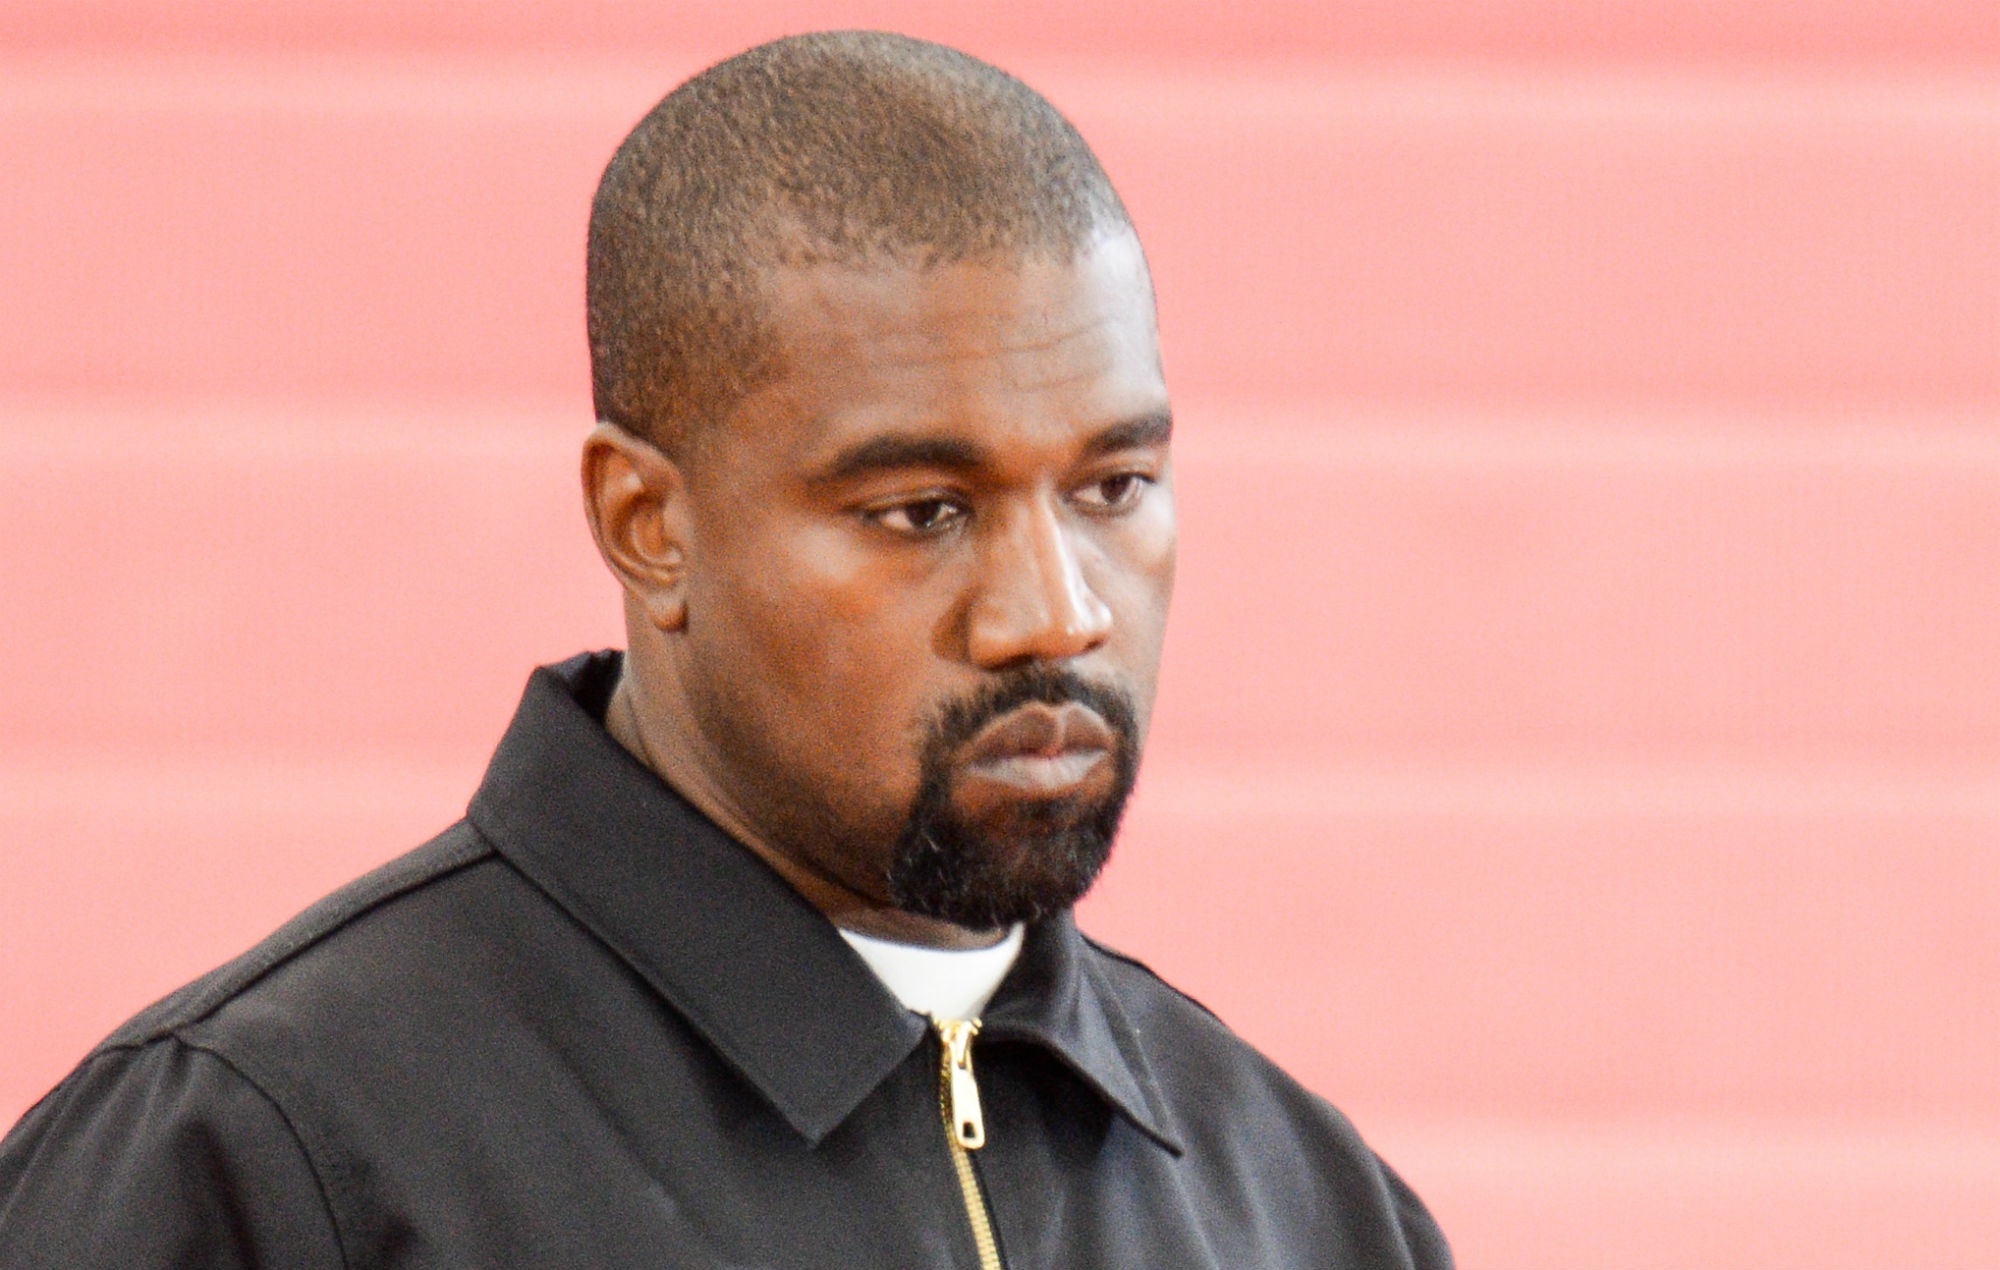 Kanye West Rants On Twitter, Pees On Grammy Award